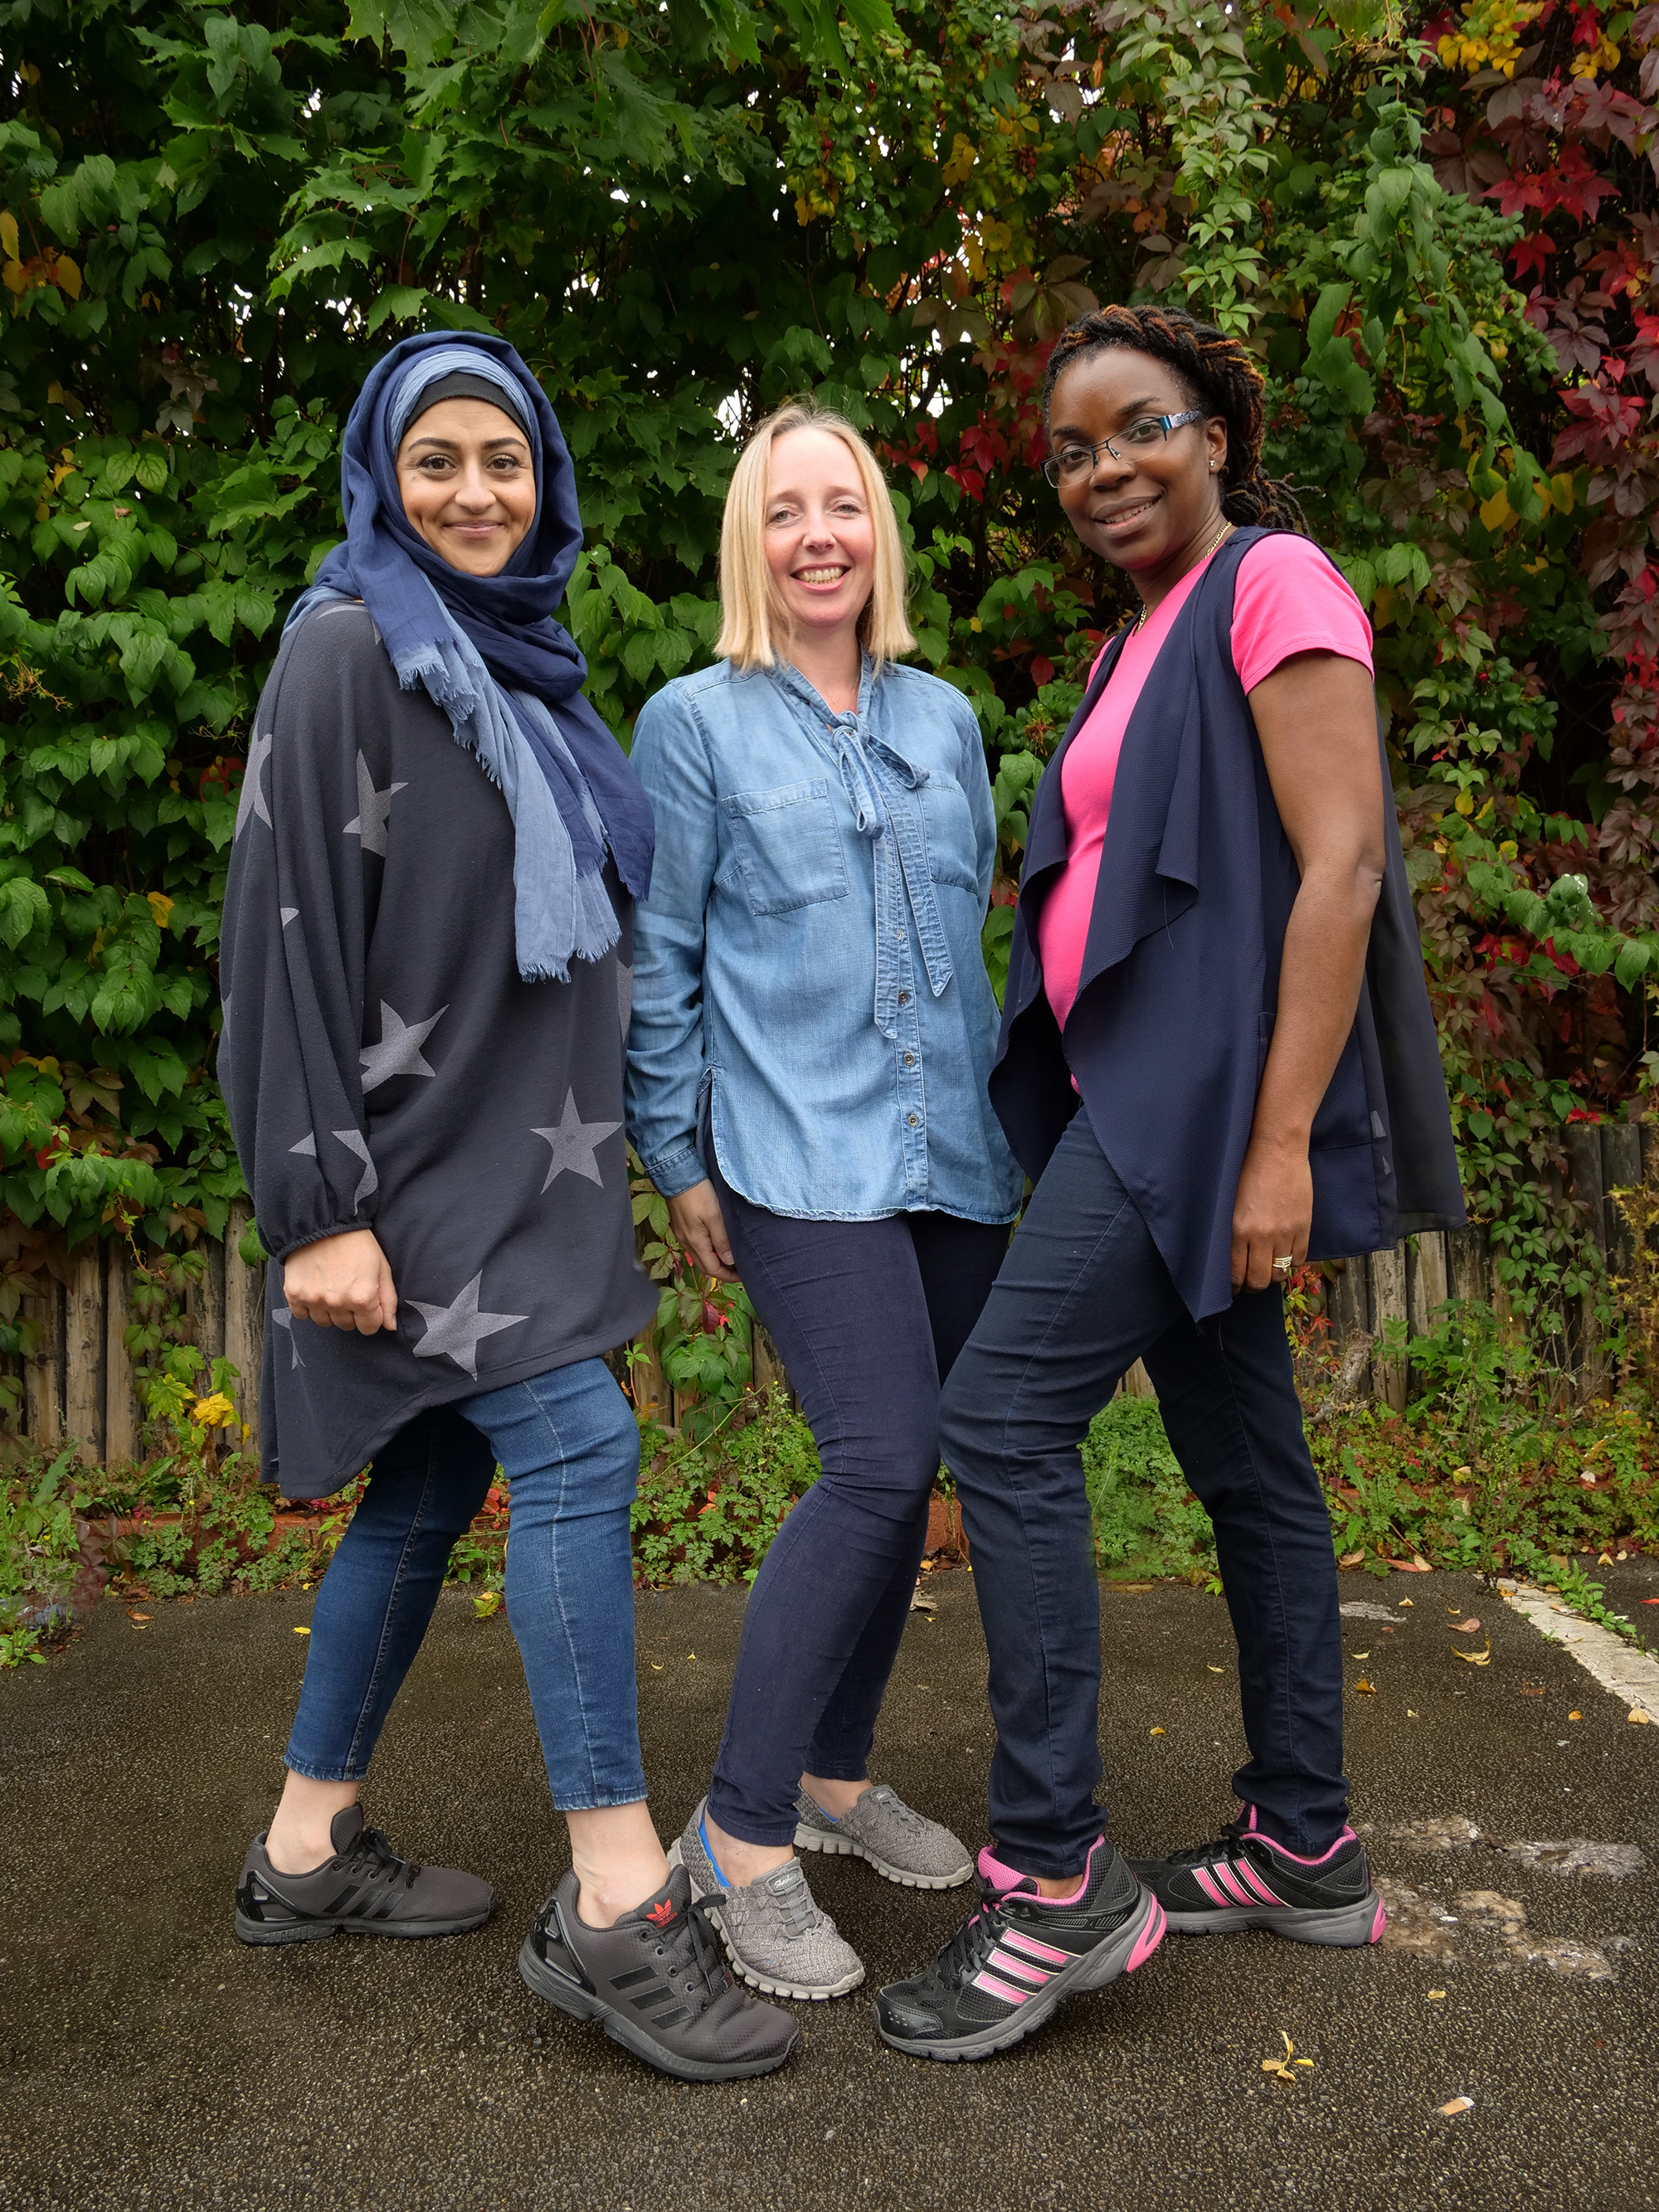 Community friends (L-R) Saphia Khan, Alison Beacham and Claudette Dawson are ready for the Walk Together unity event in Birmingham